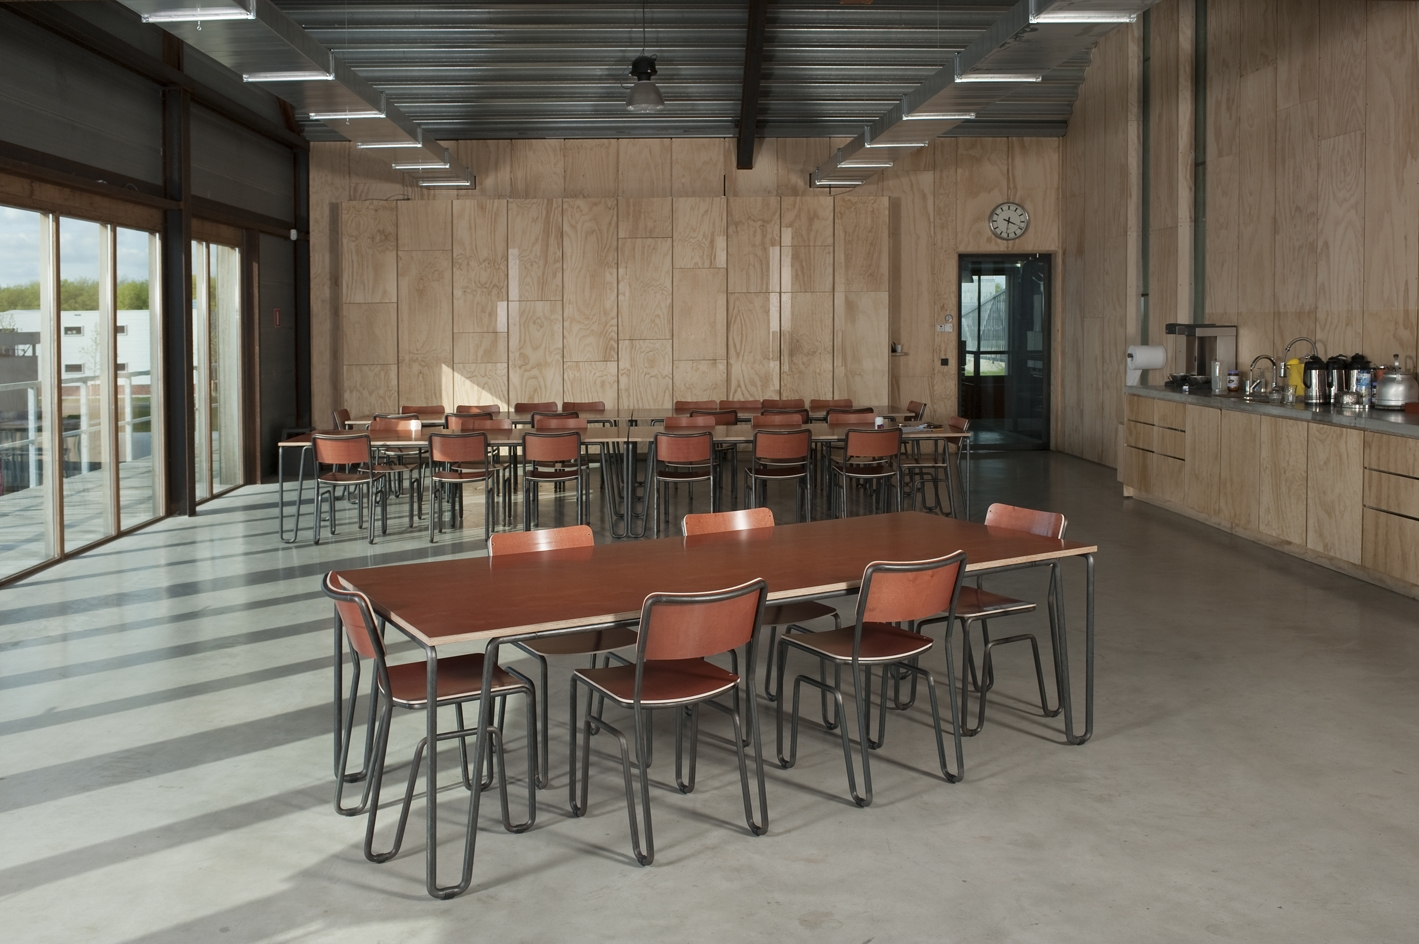 Zoom chairs and table in lunchroom